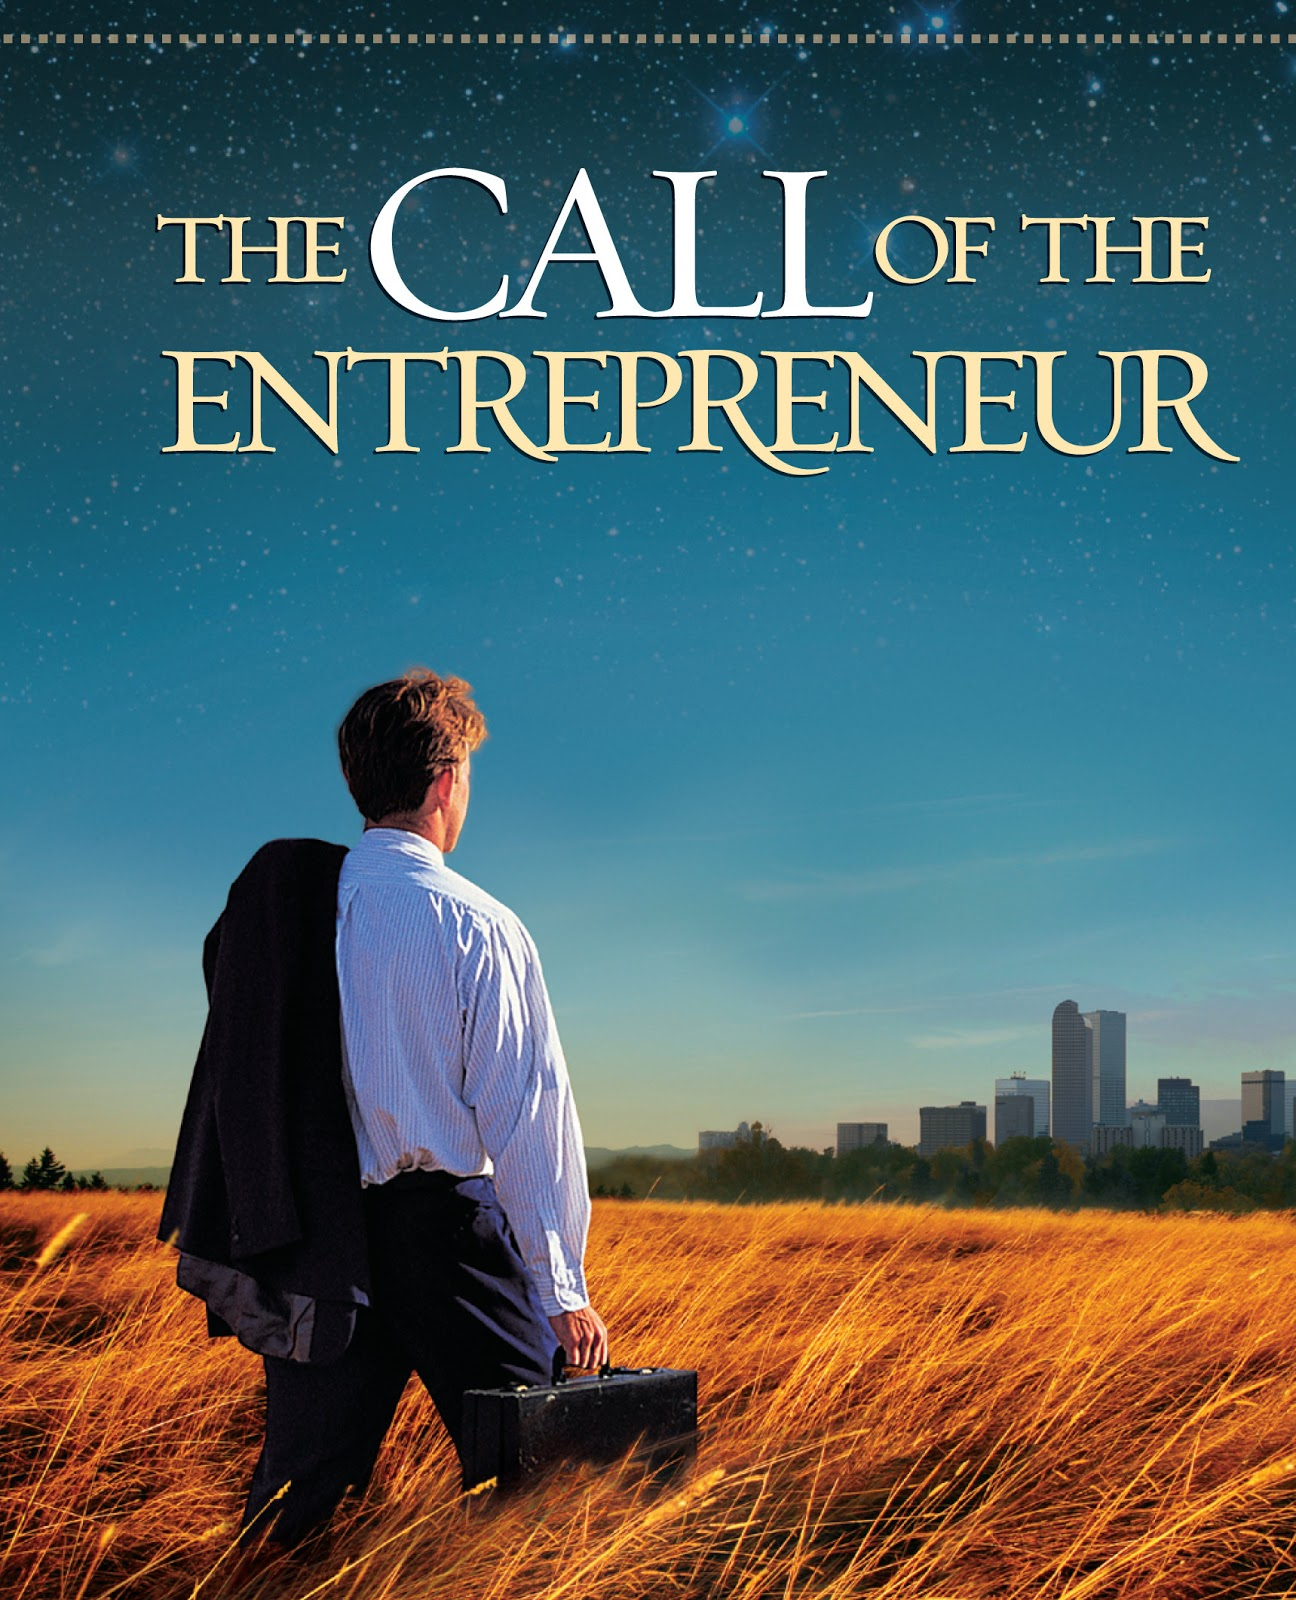 Best entrepreneur movies #42: The Call of the Entrepreneur